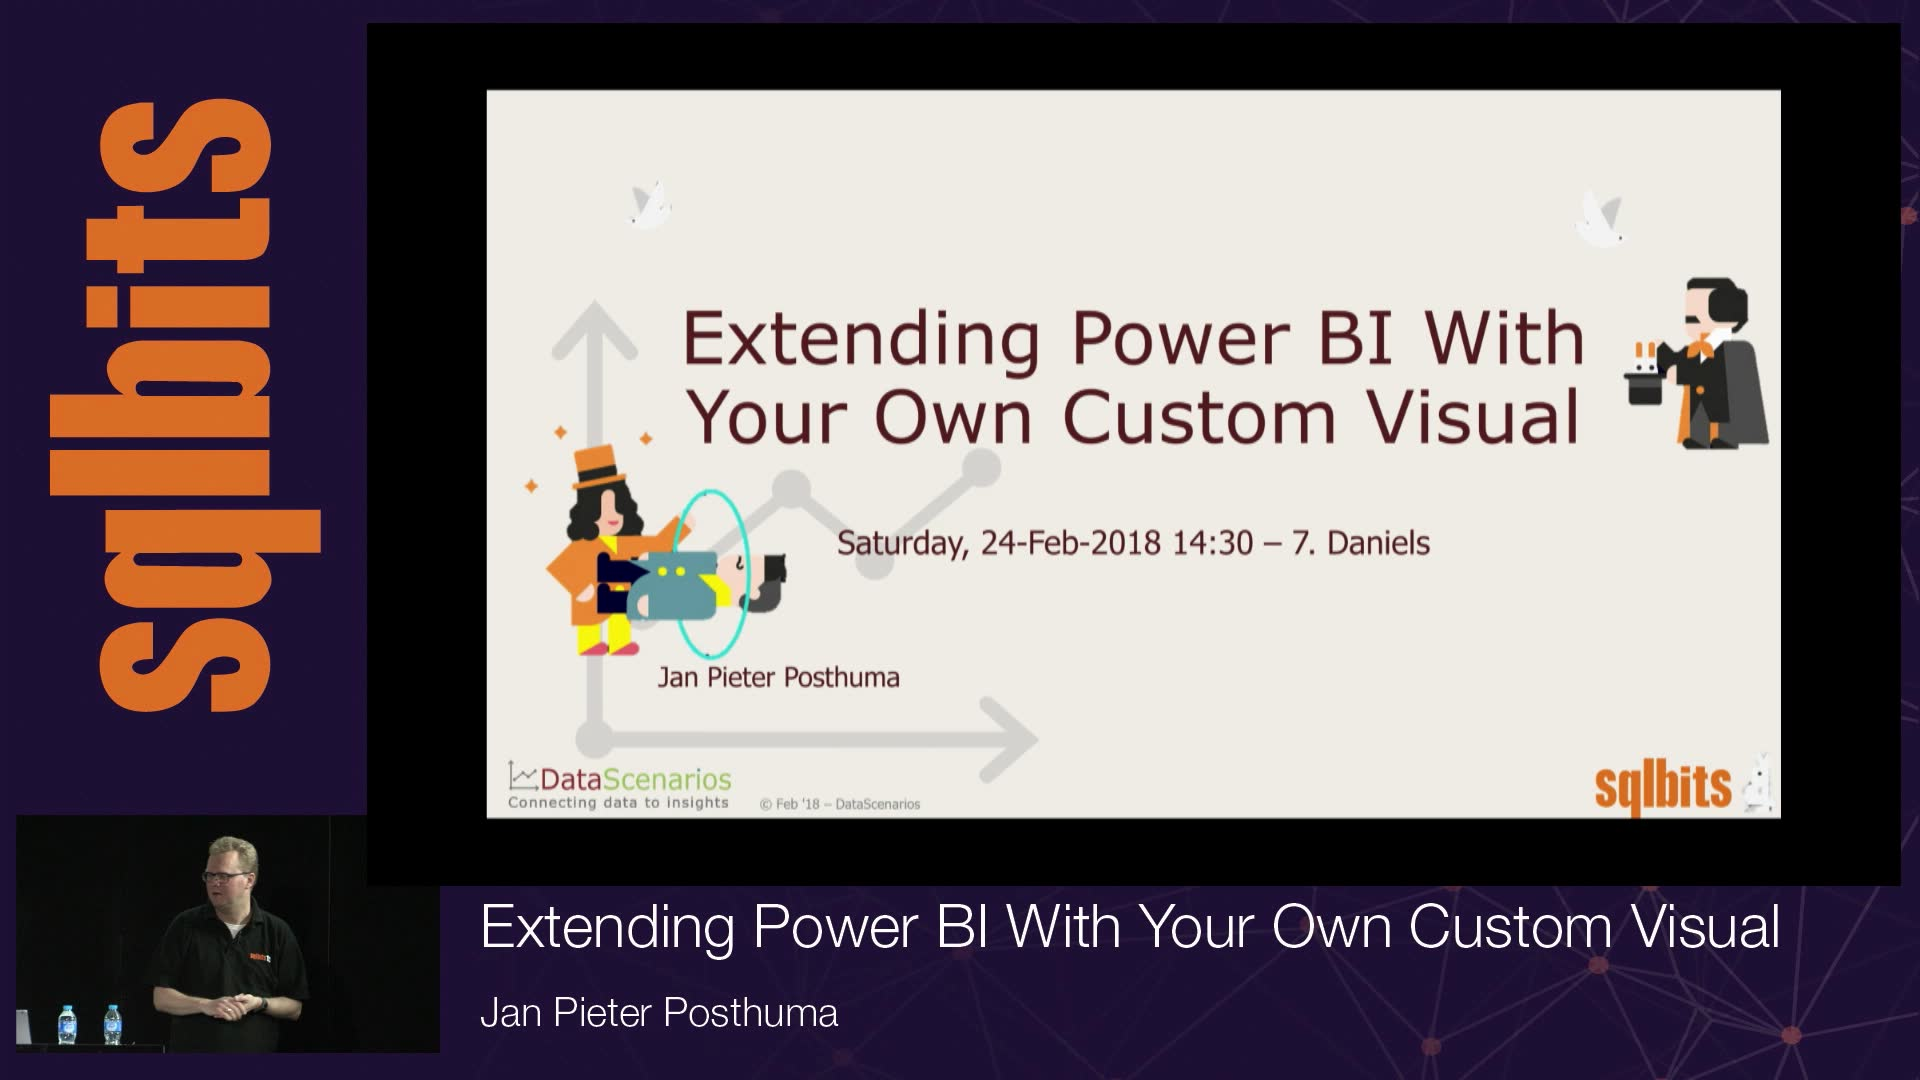 Extending Power BI With Your Own Custom Visual with Jan Pieter Posthuma